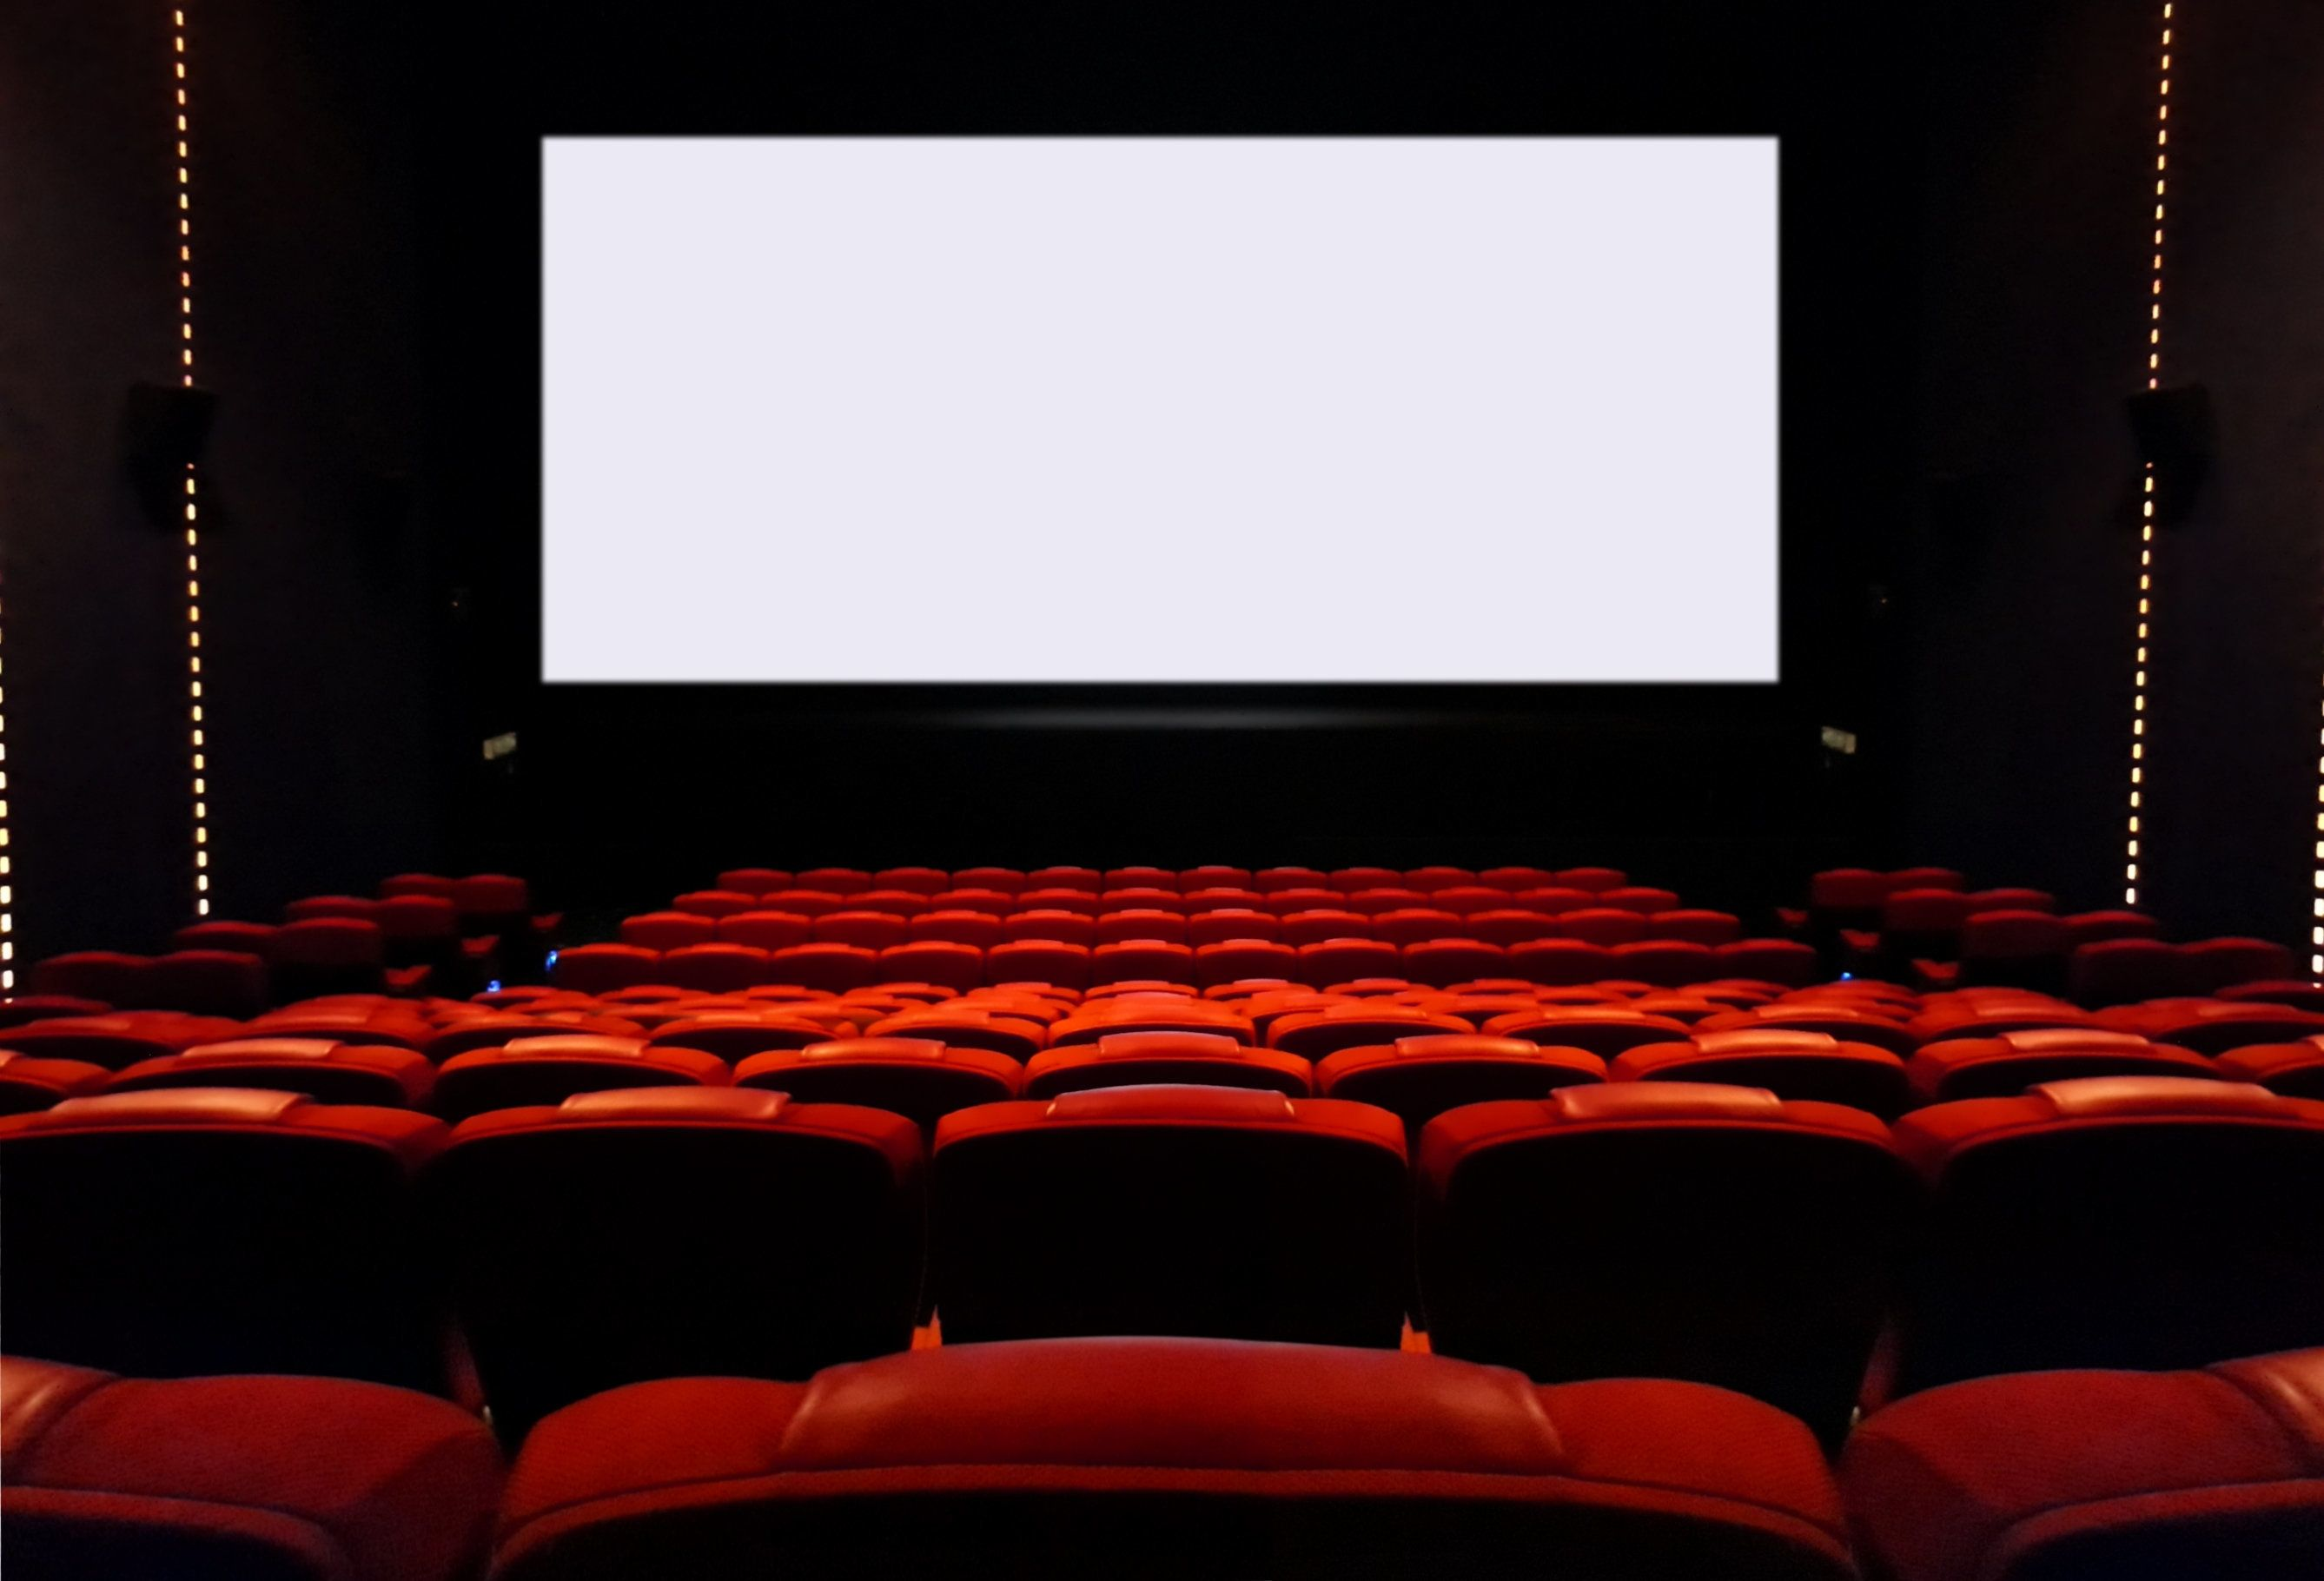 Interior view of empty movie seat and blank cinema screen